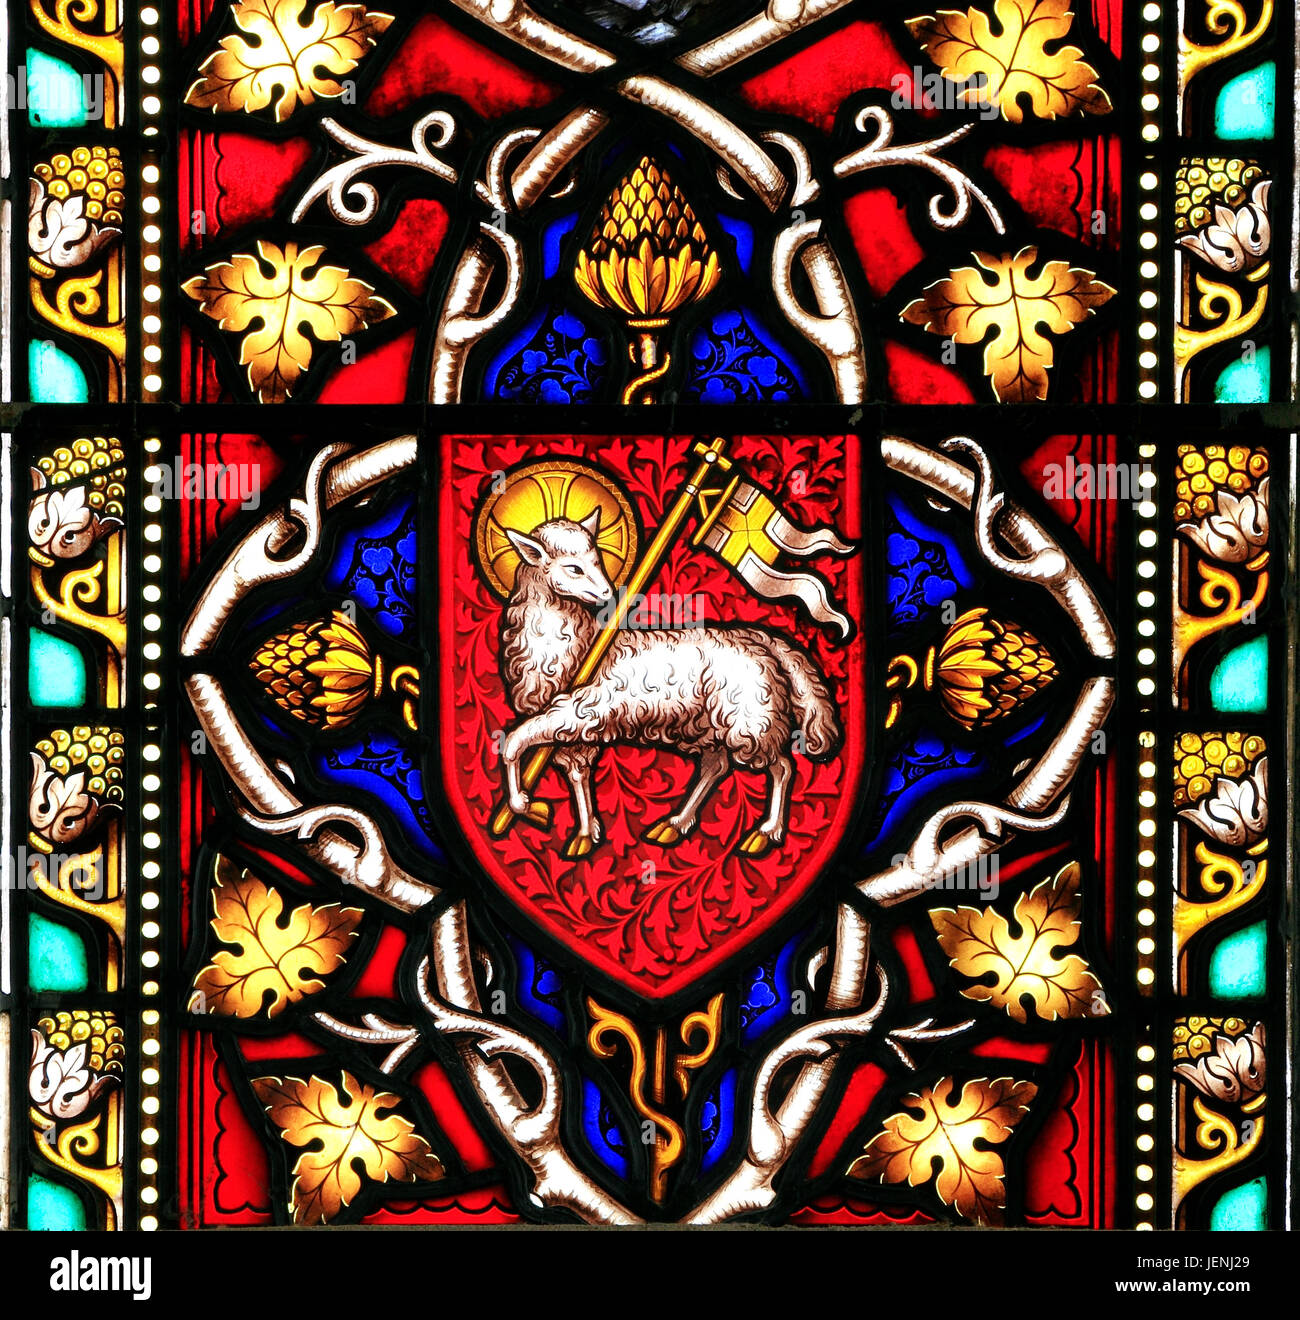 Lamb and Flag symbol, motif, Agnus Dei, Lamb of God, stained glass window by William Warrington, 1856, Field Dalling, - Stock Image